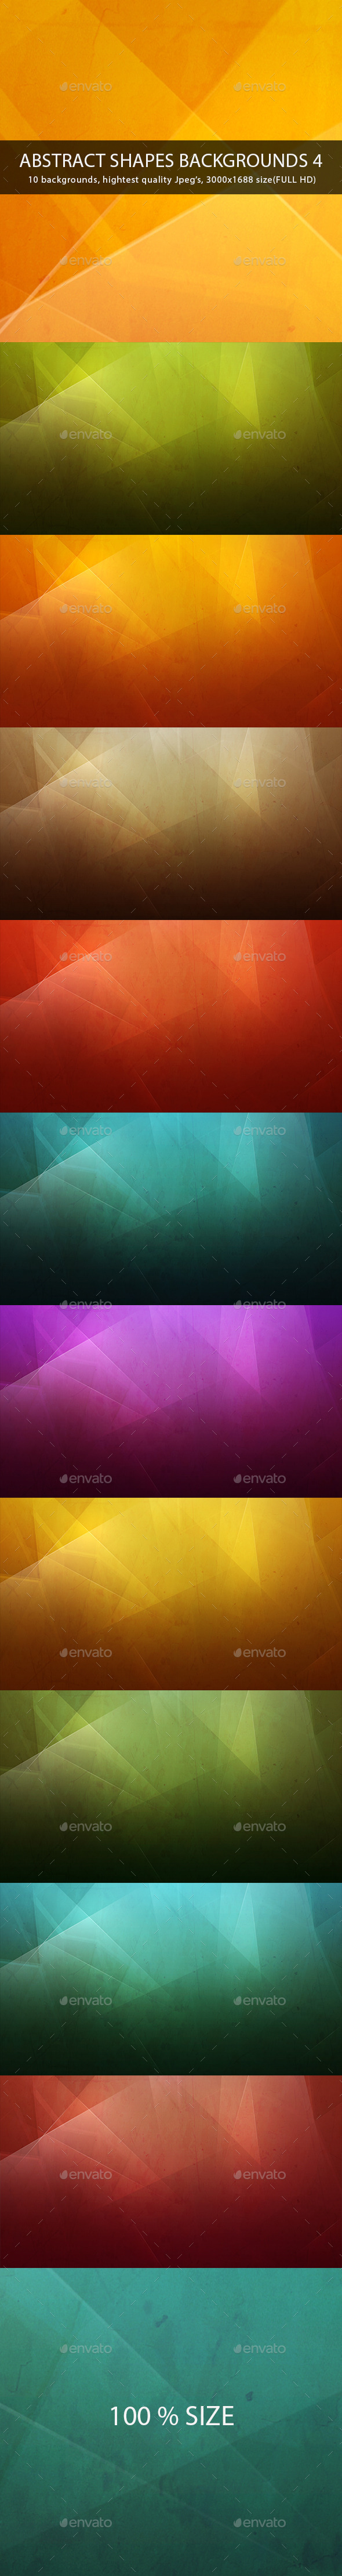 GraphicRiver Abstract Shapes Backgrounds  Wallpapers 4 9599778